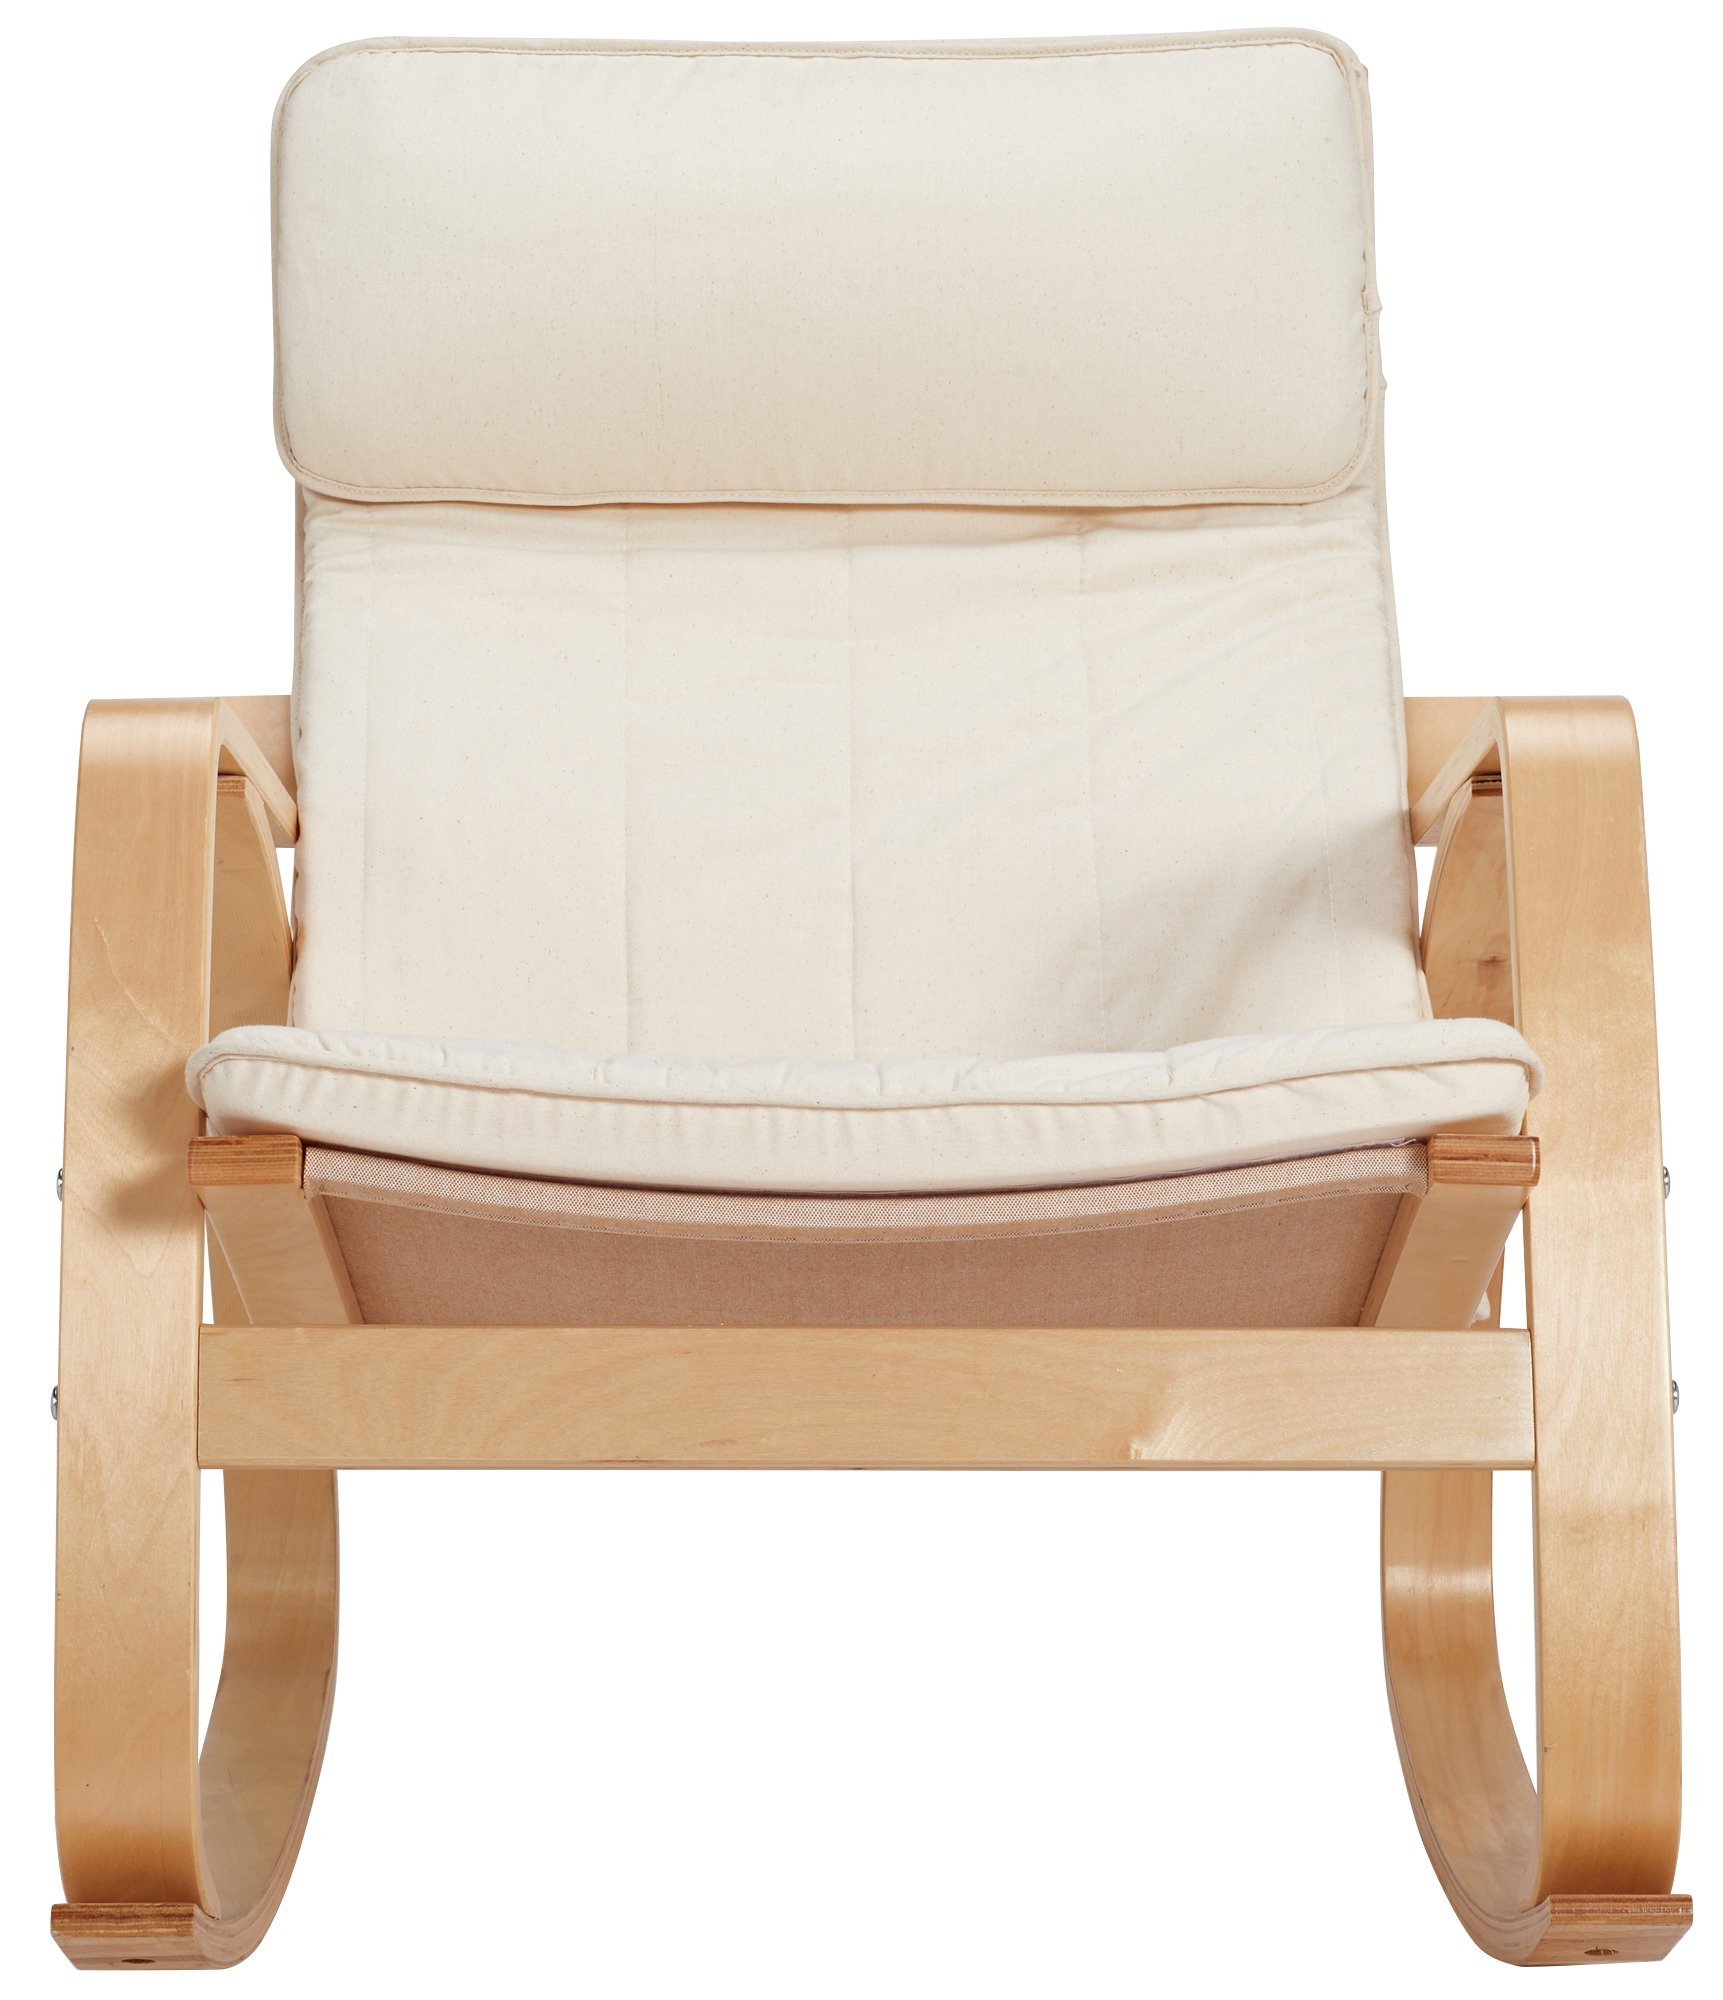 HOME Rocking Chair - Natural